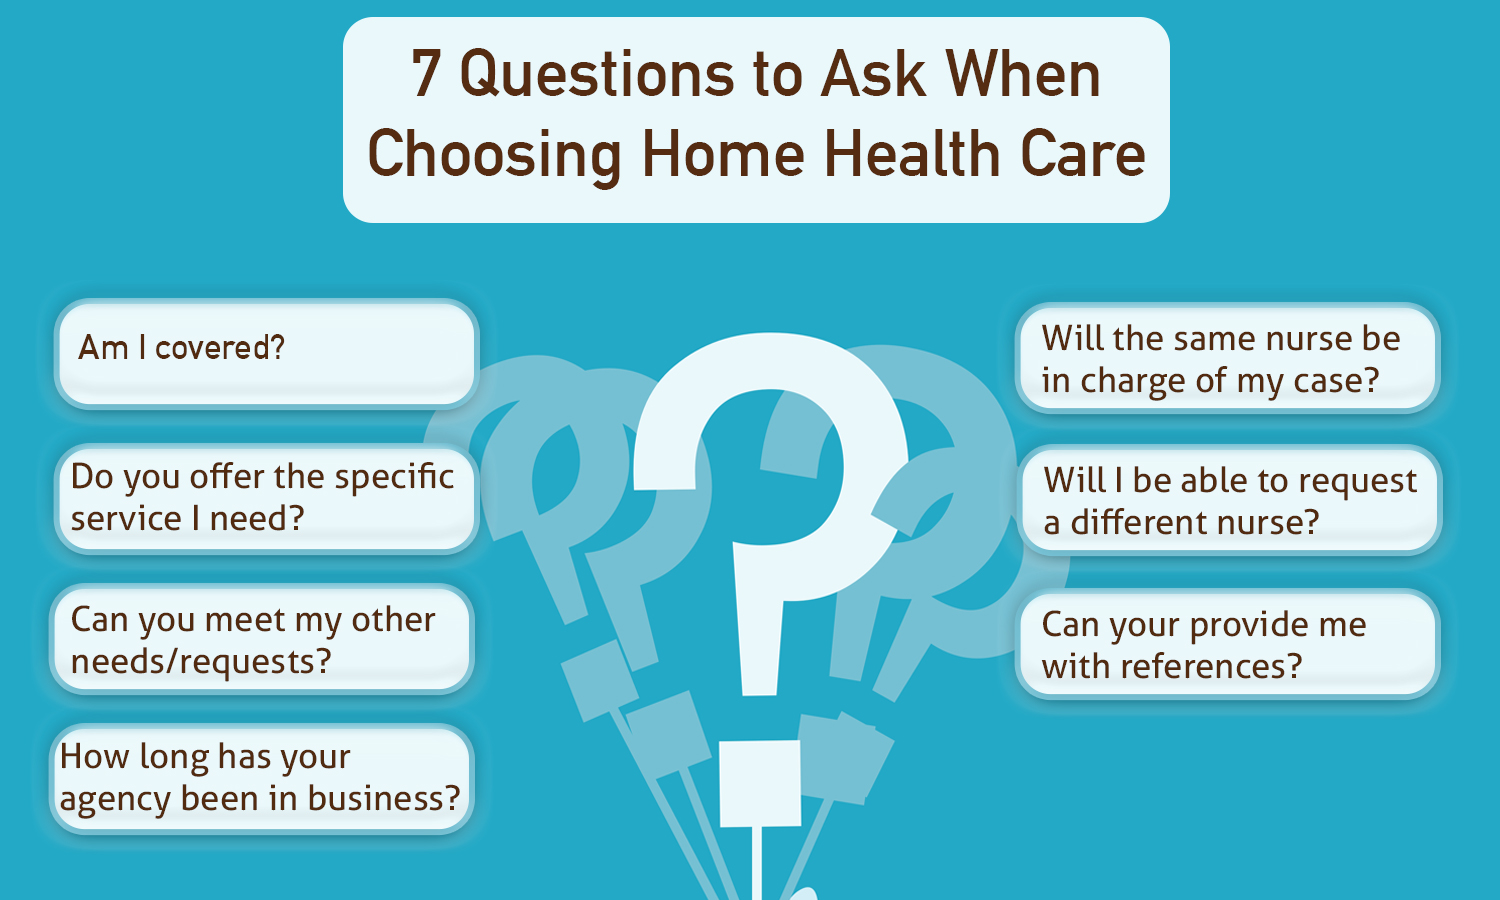 7 Questions to Ask When Choosing Home Health Care?